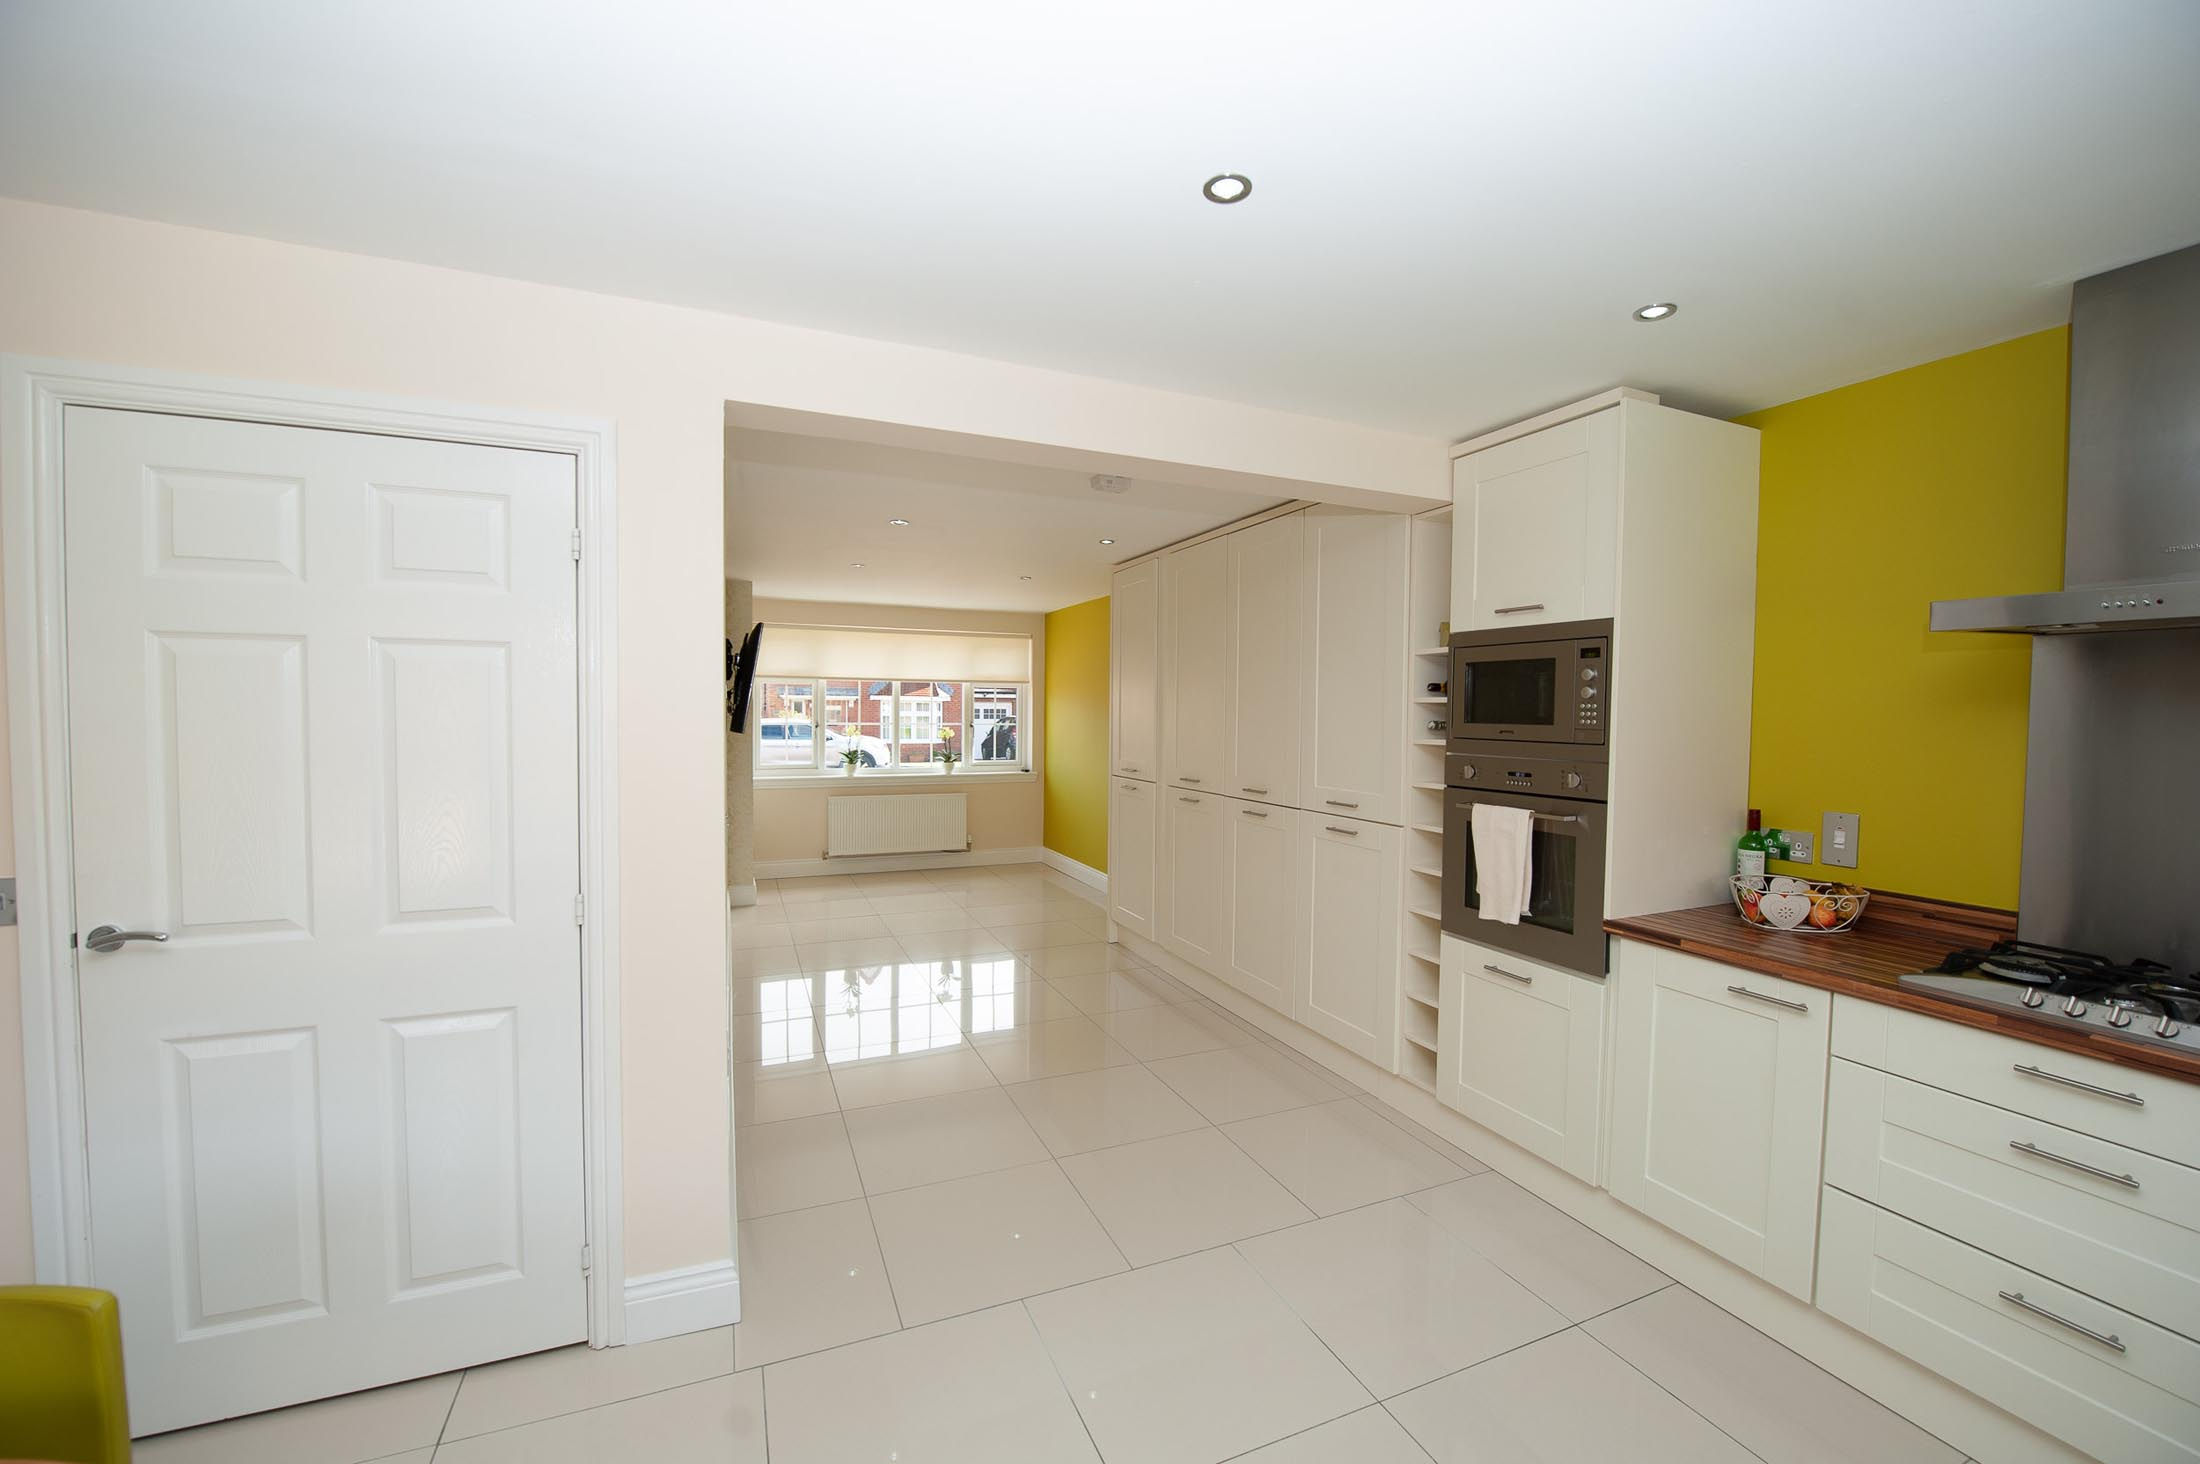 Ayrshire Garage Conversions